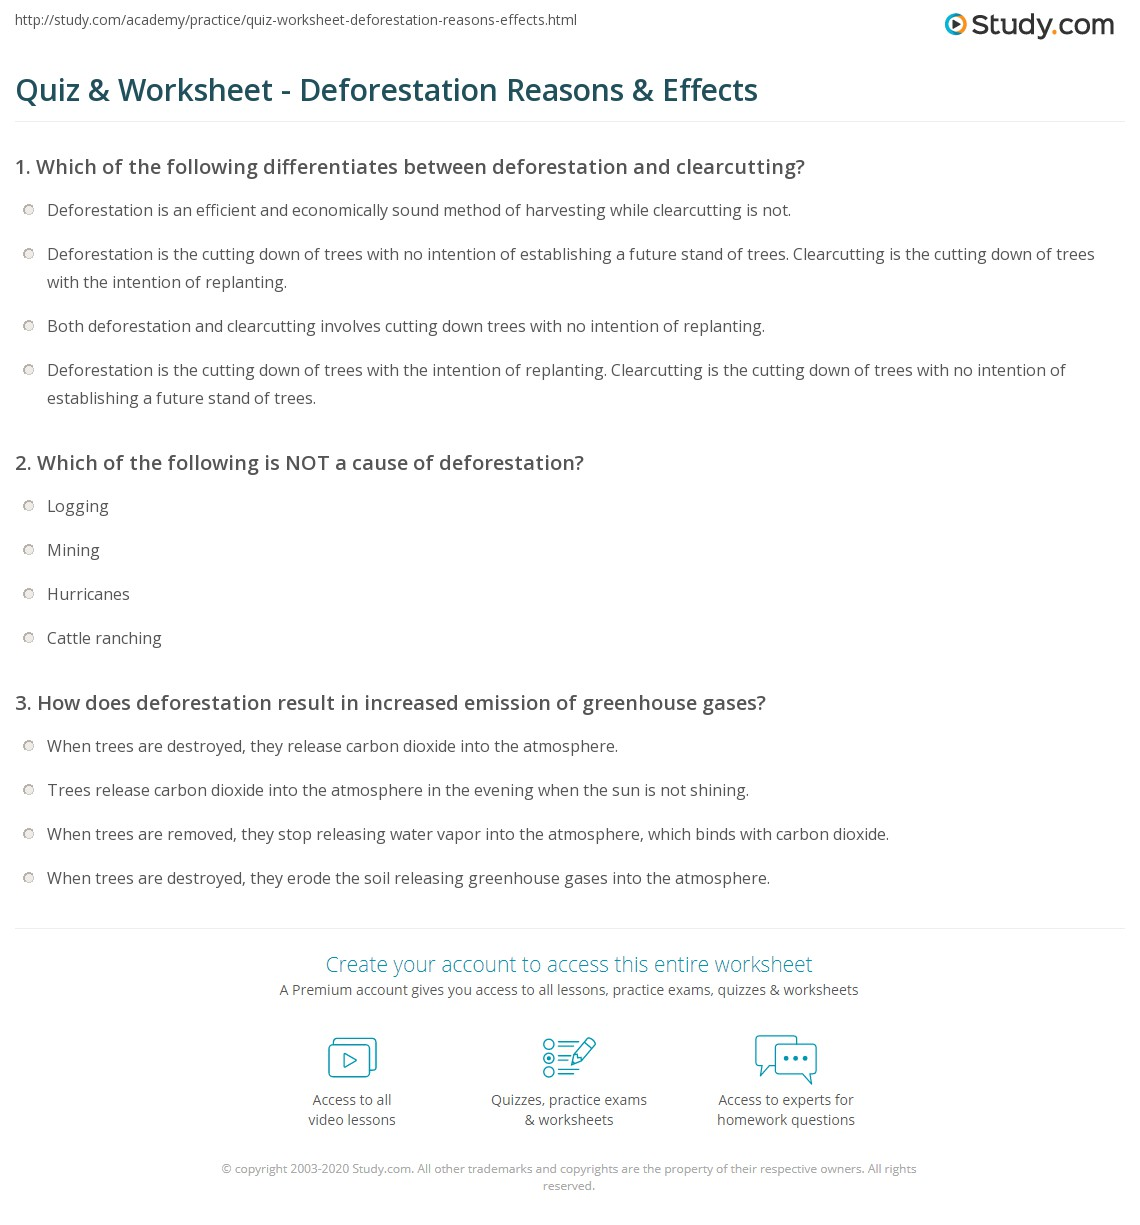 Uncategorized Greenhouse Effect Worksheet quiz worksheet deforestation reasons effects study com print definition causes consequences worksheet